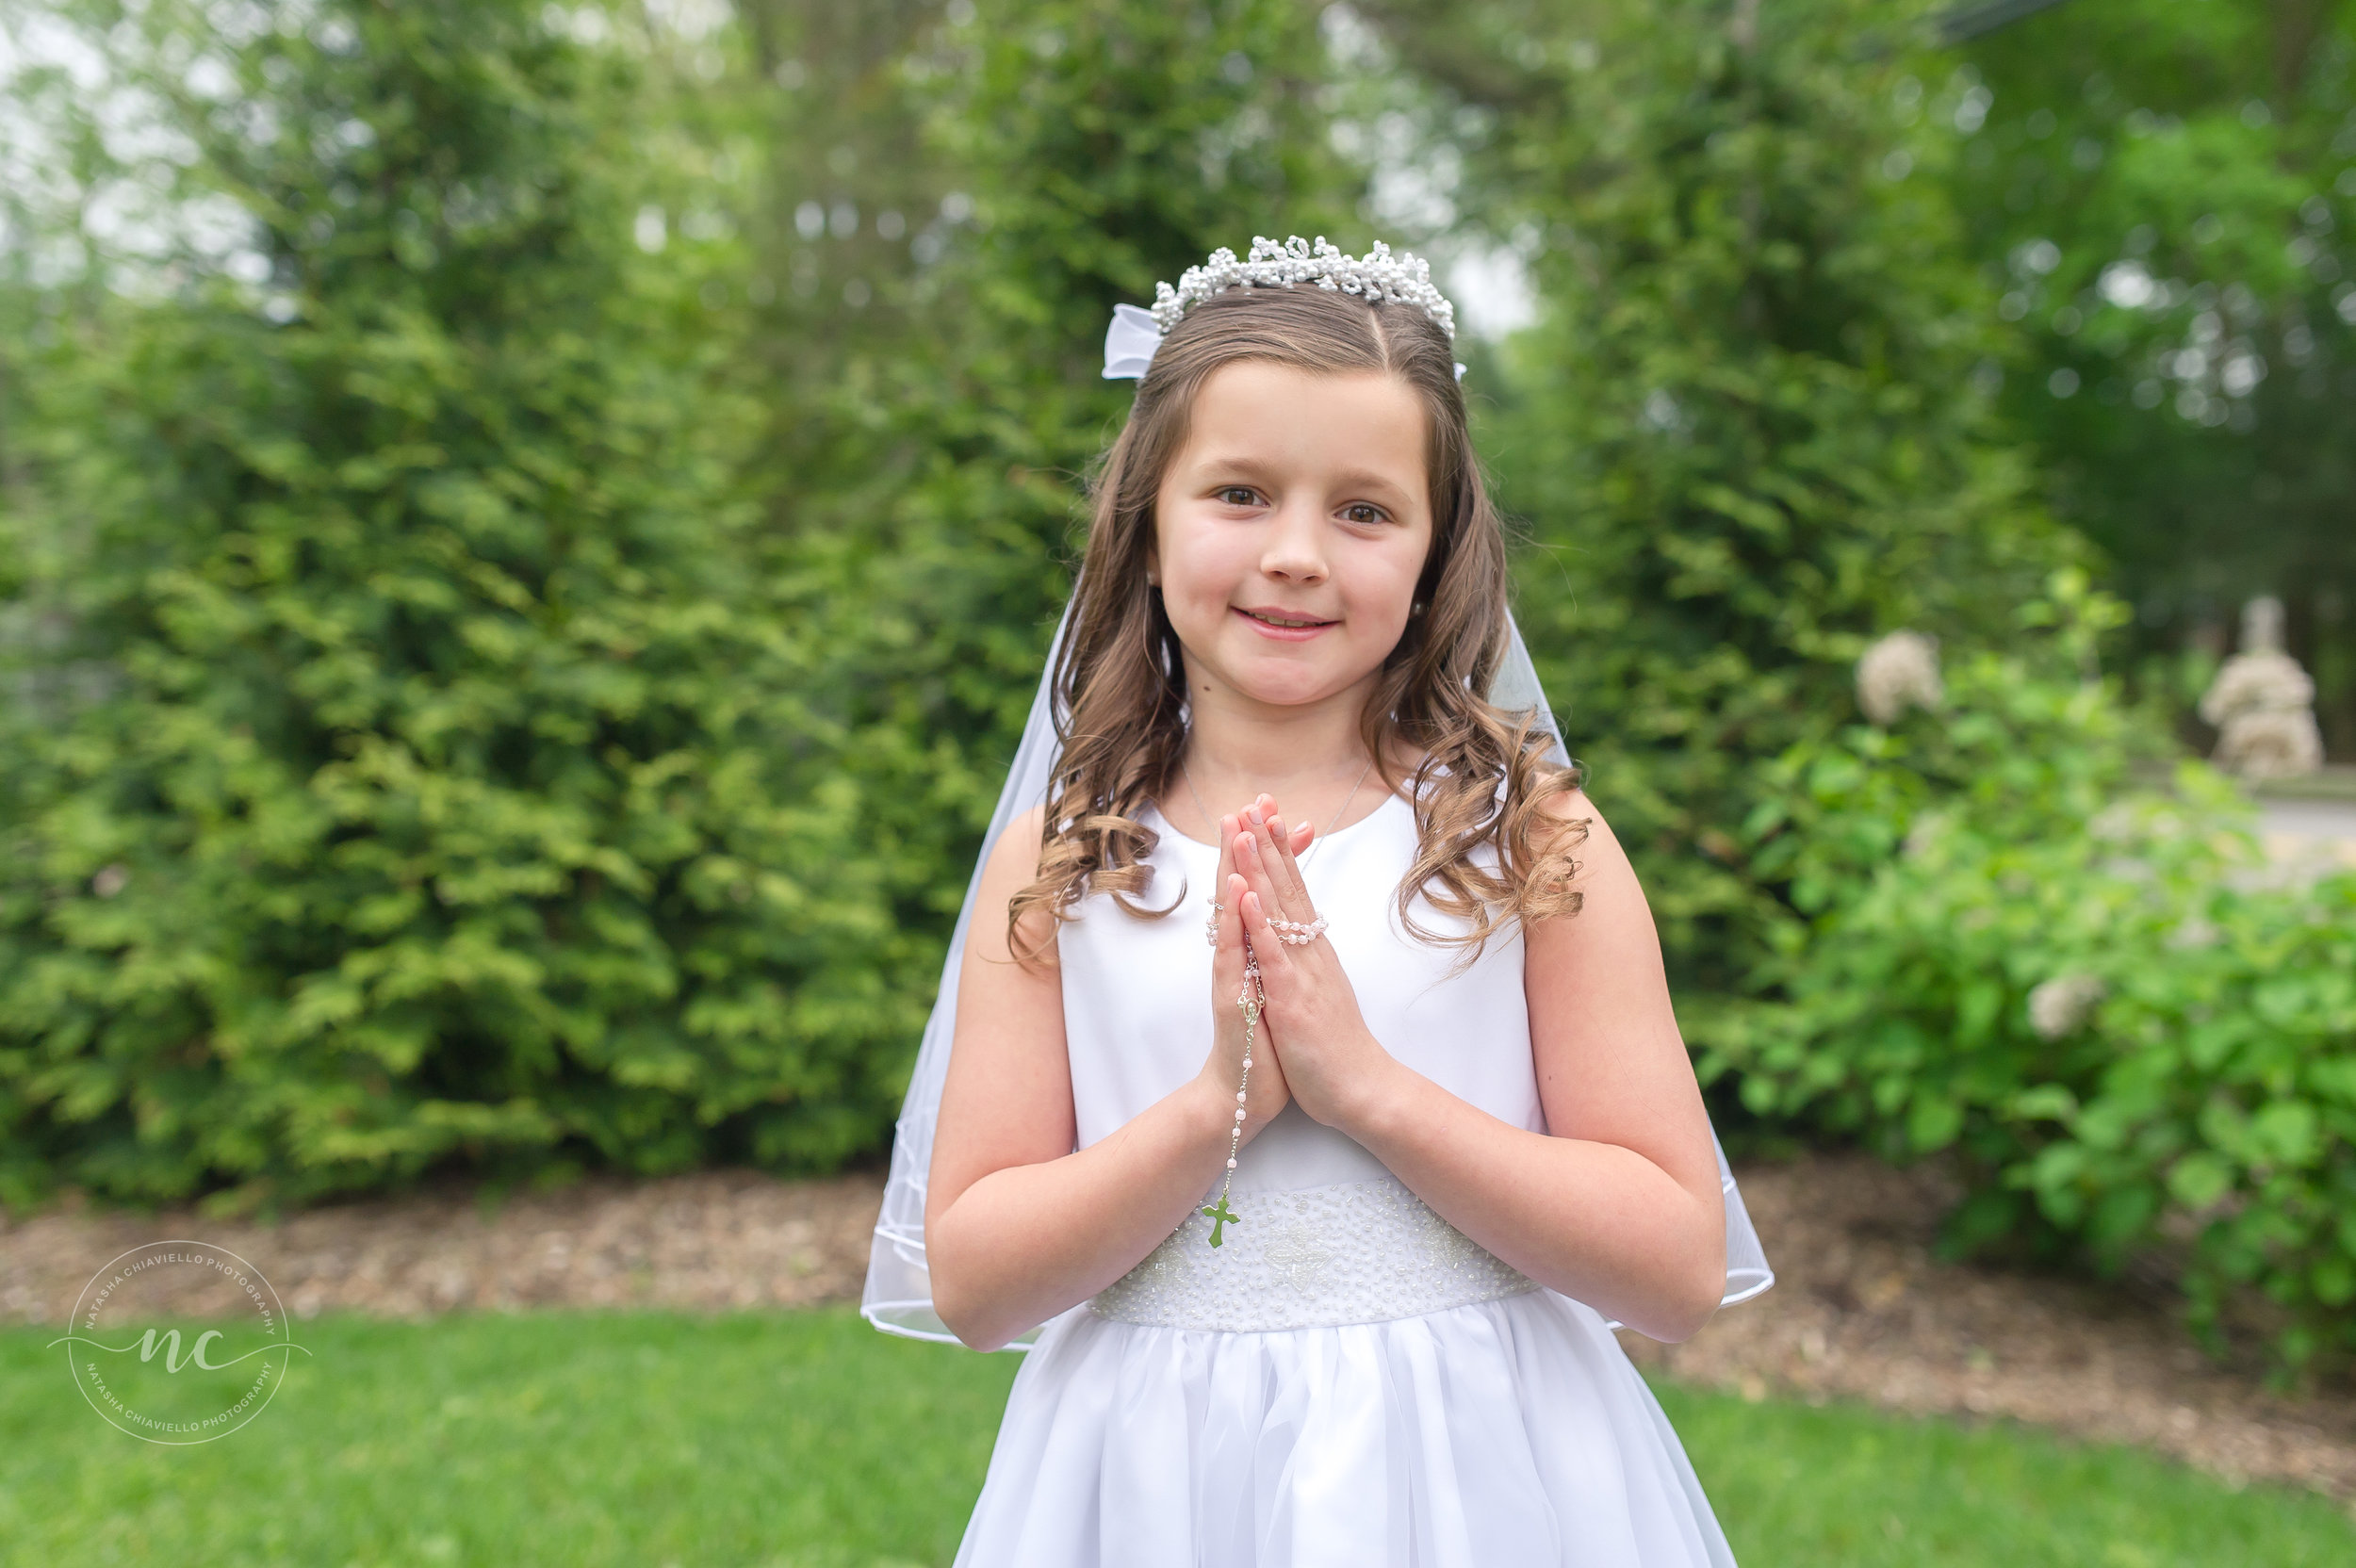 communion dress and rosary